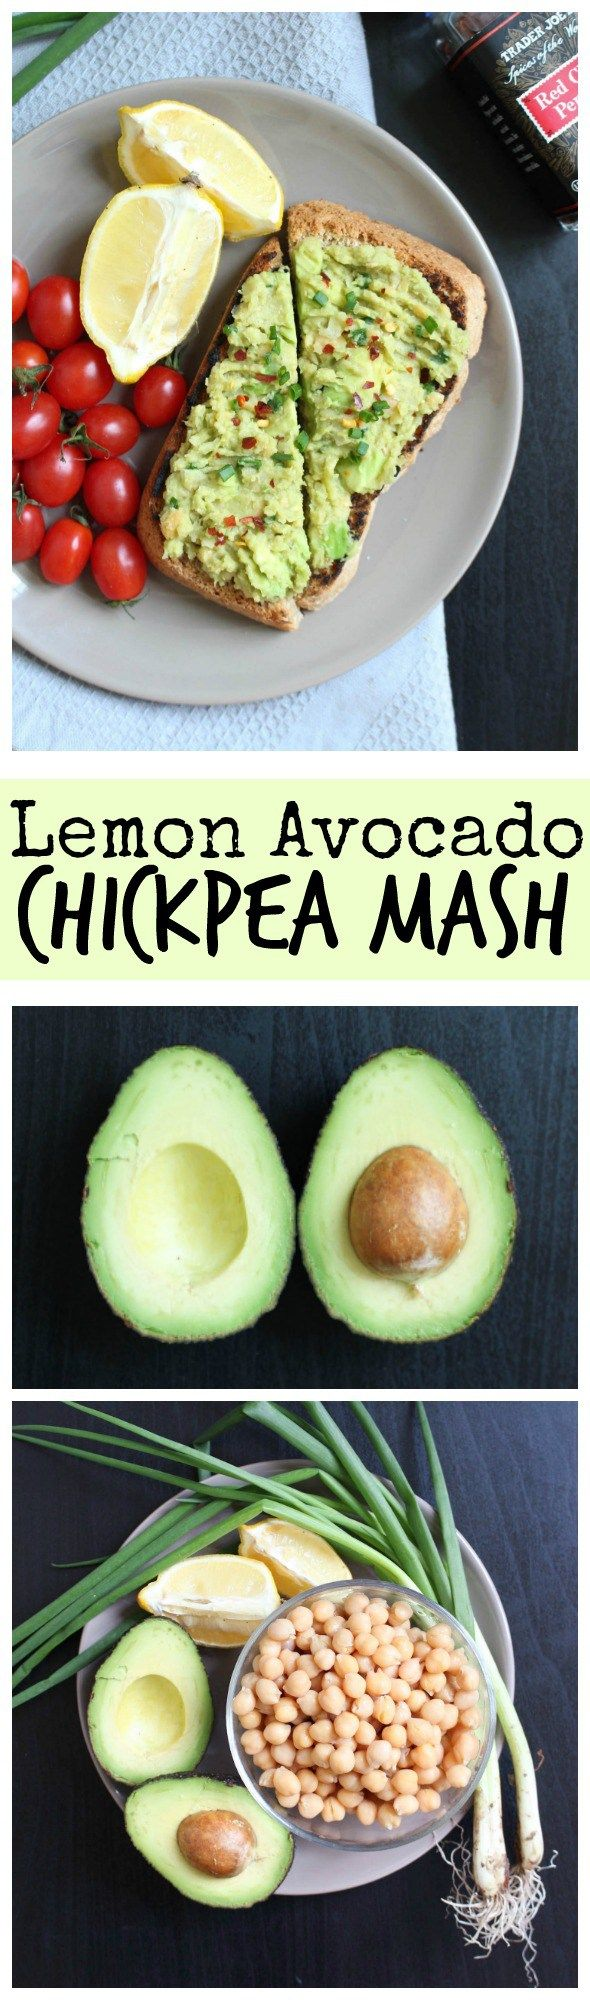 THE SIMPLEST Lemon Avocado Chickpea Mash! This simple spread is addicting! So zesty, creamy and savory. I love it on homemade toast or as a sandwich spread. Vegan, gluten free and only 5 INGREDIENTS!!